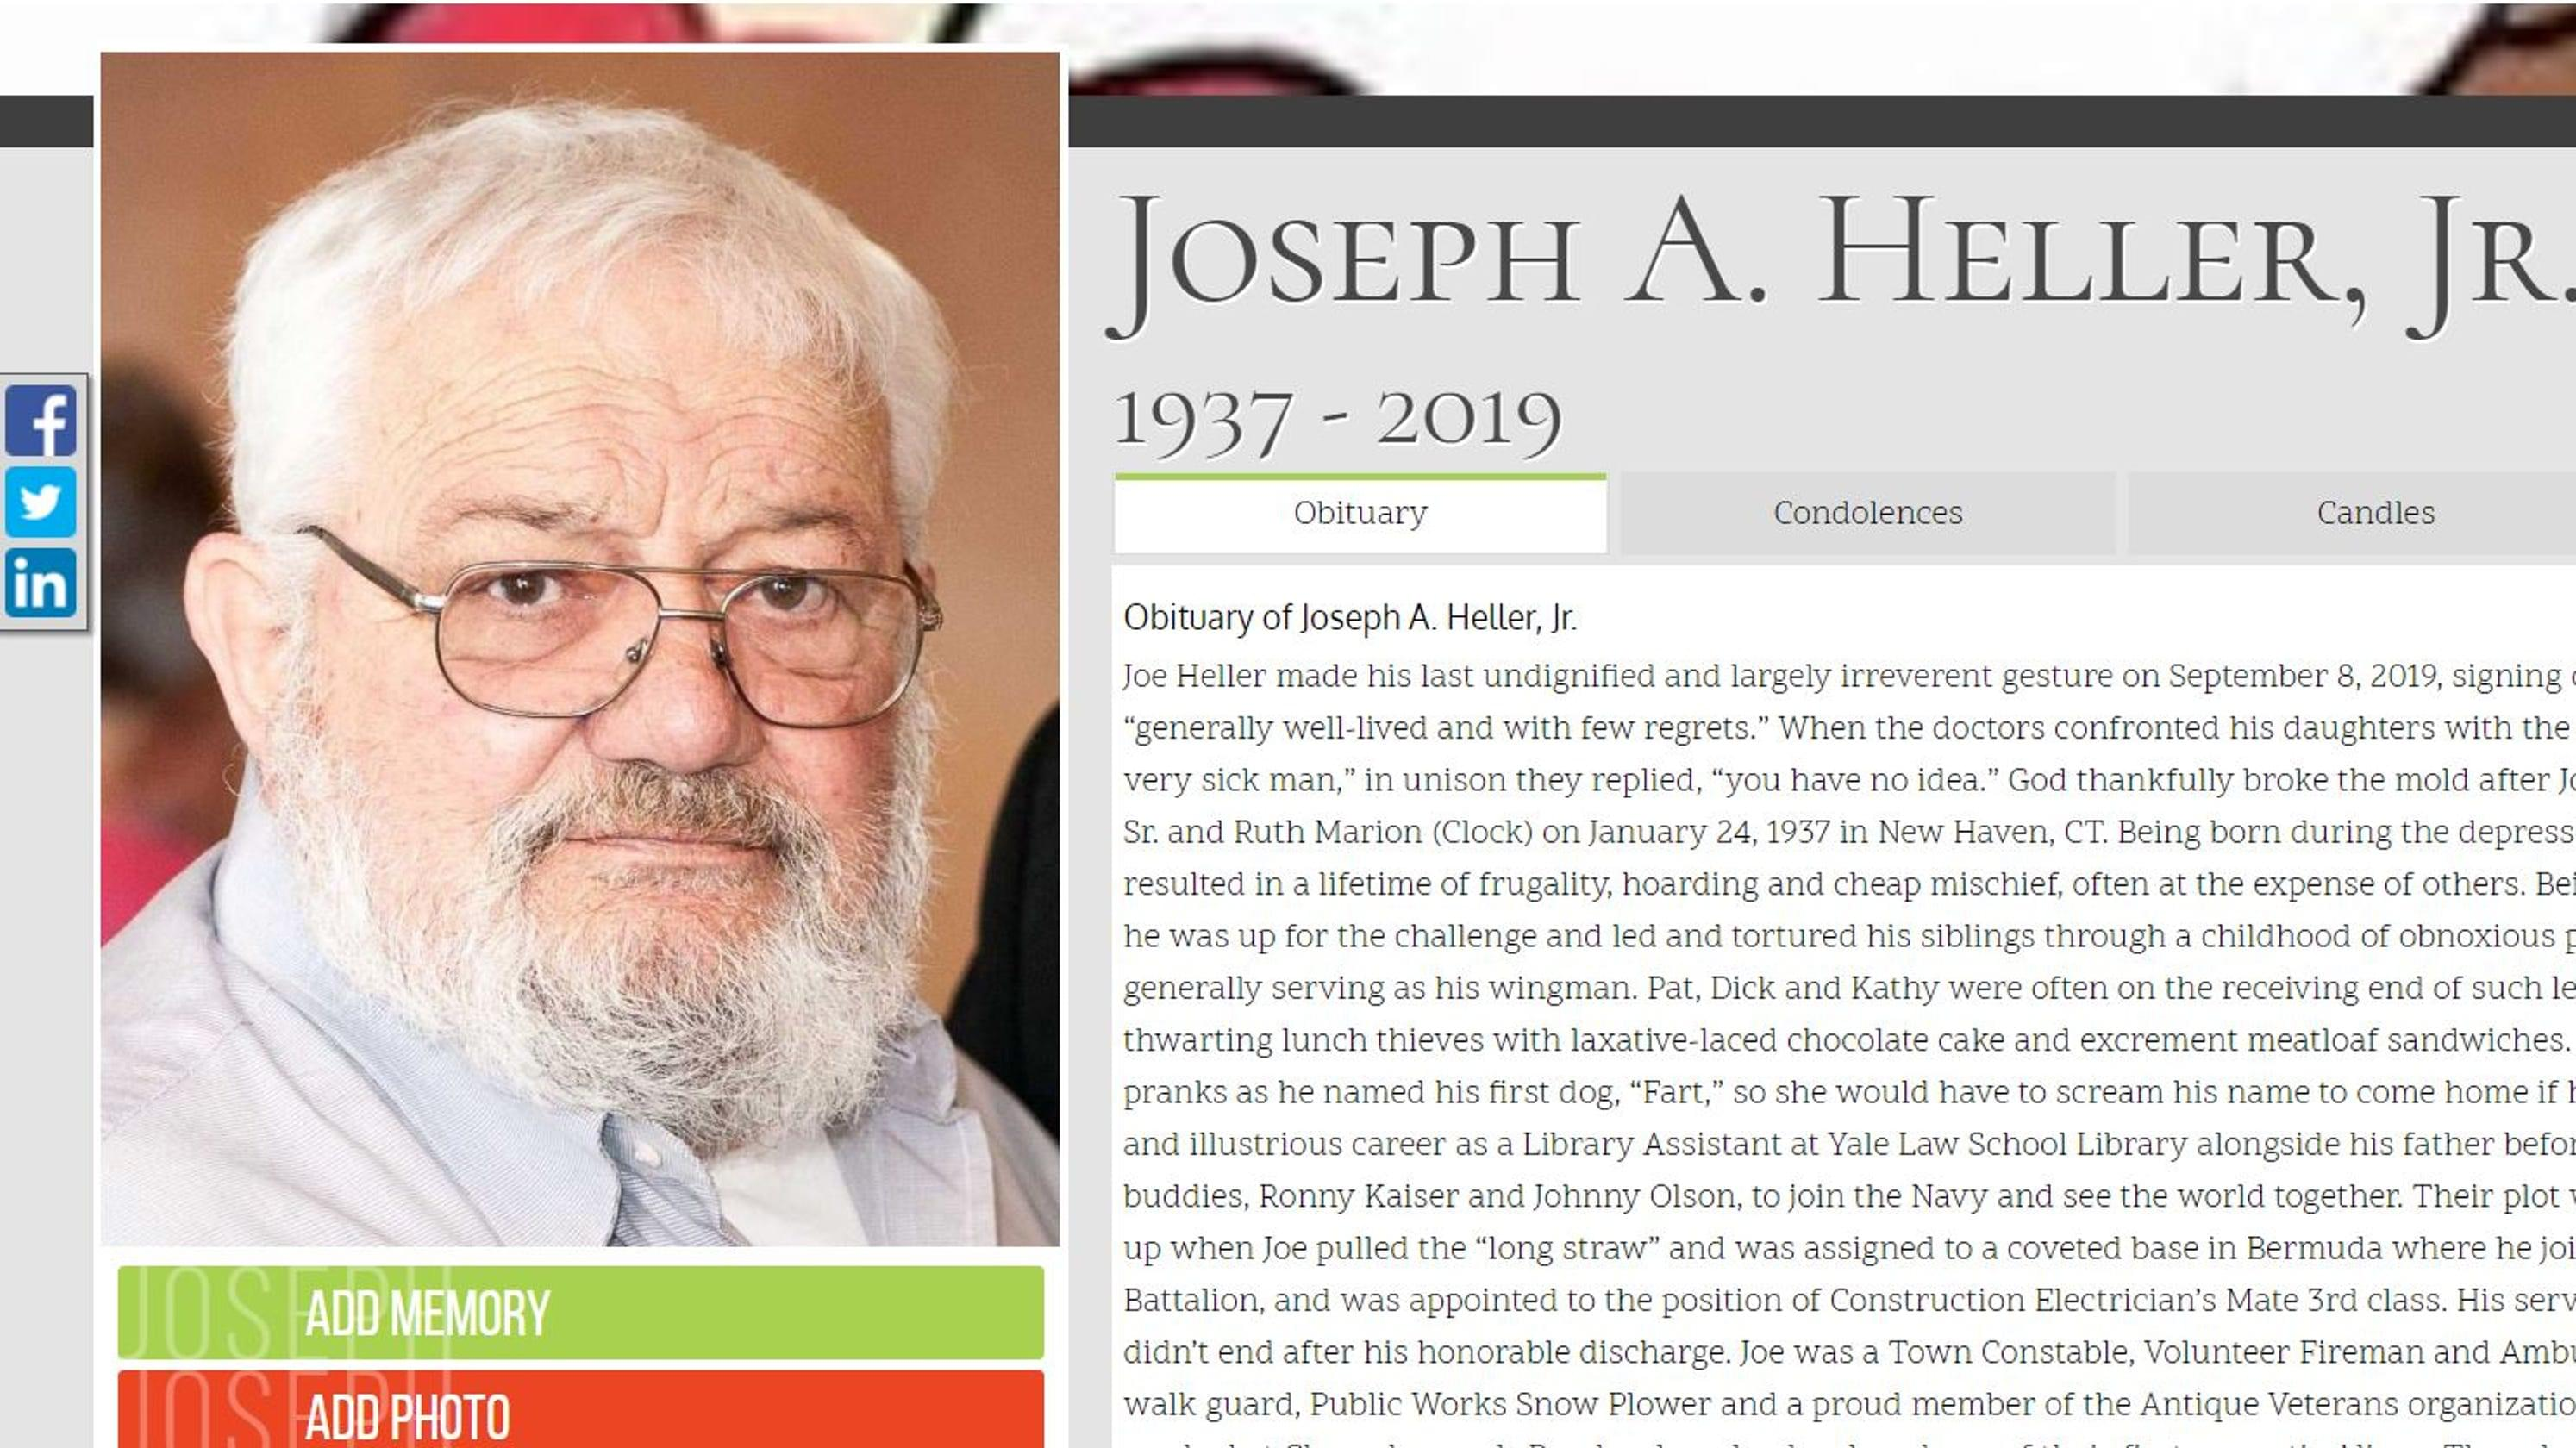 My Kids Might Want to Keep This Obit For Future Reference……